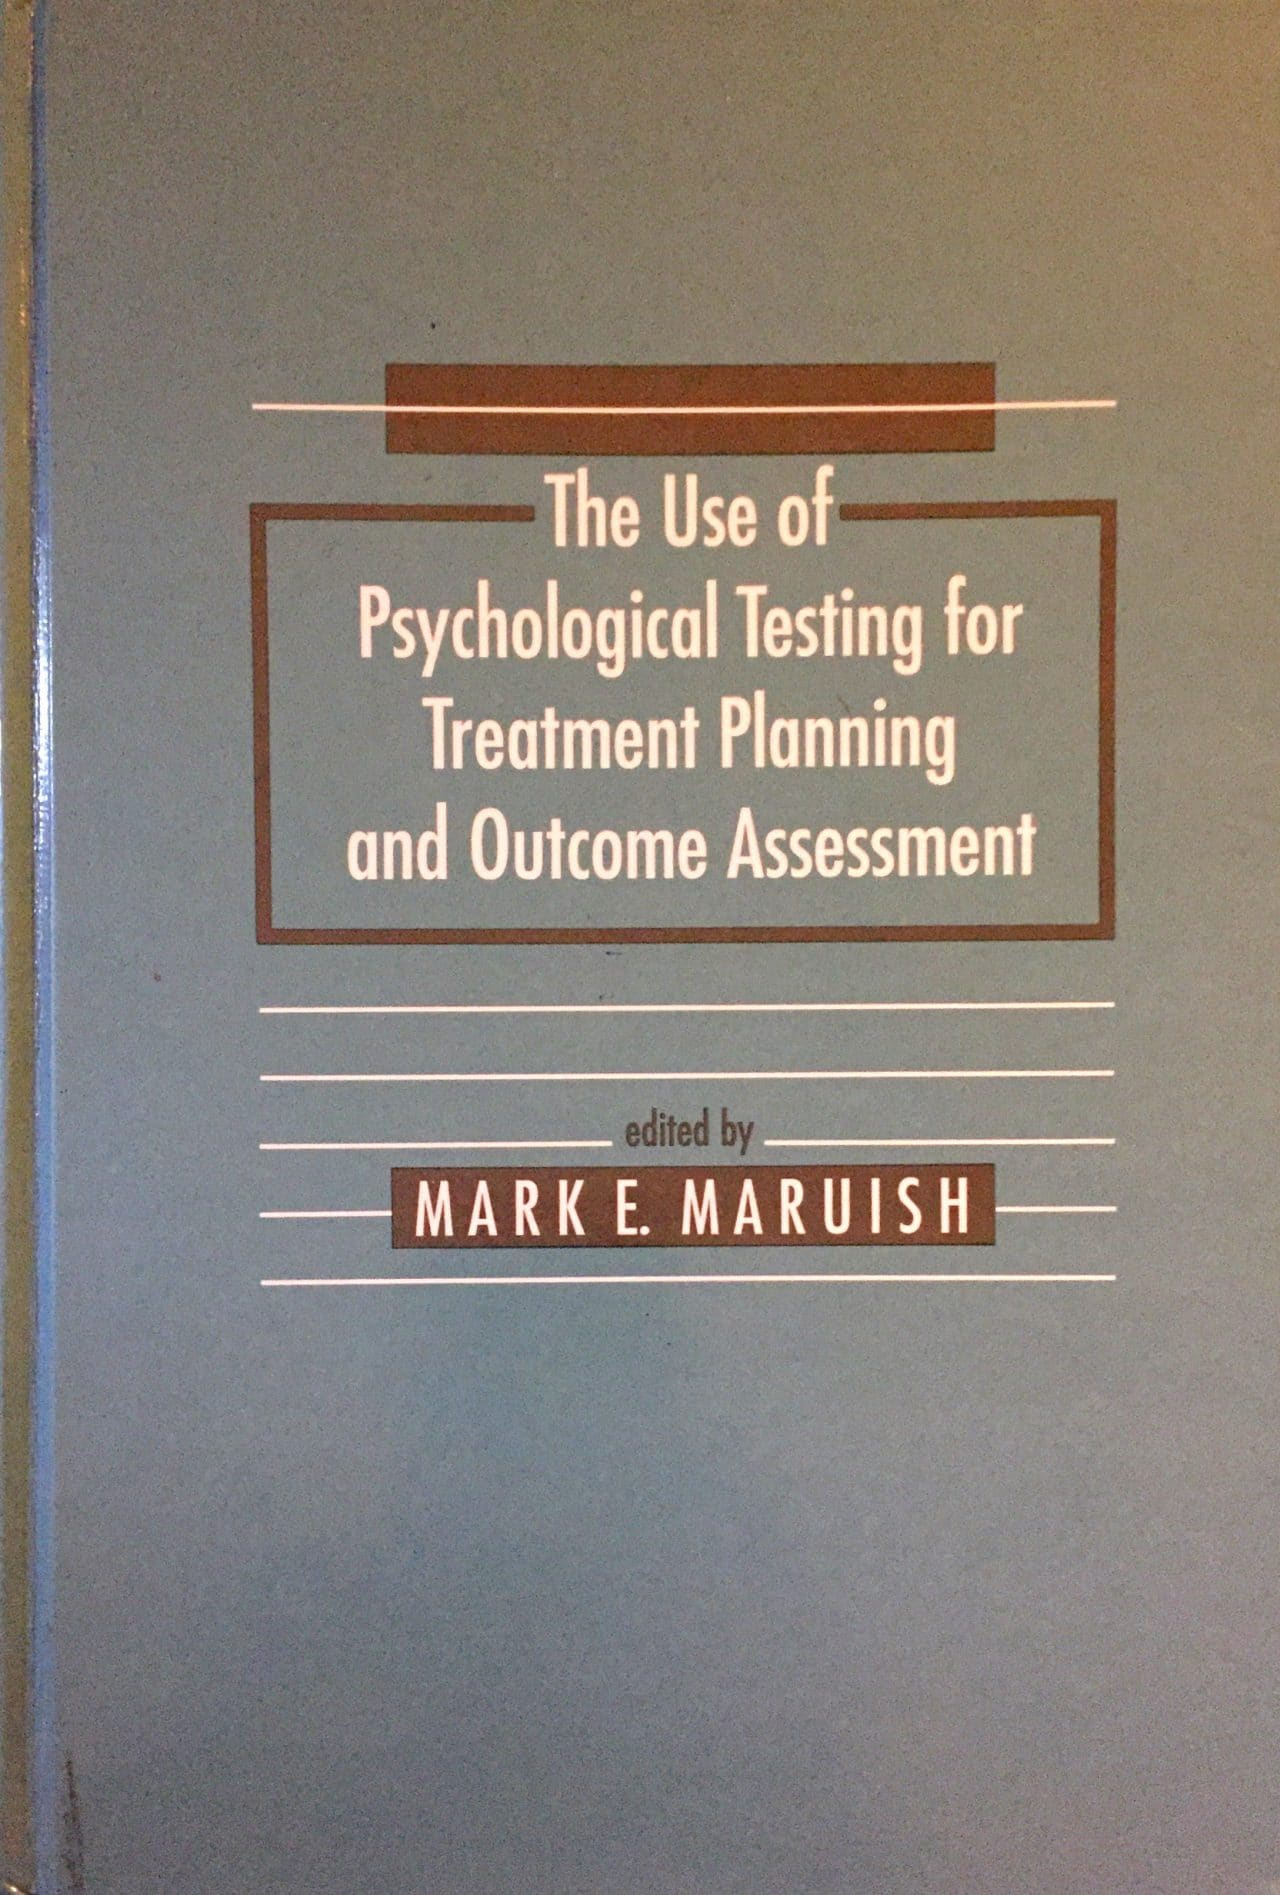 The Use Of Psychological Testing For Treatment Planning And Outcome Assessment